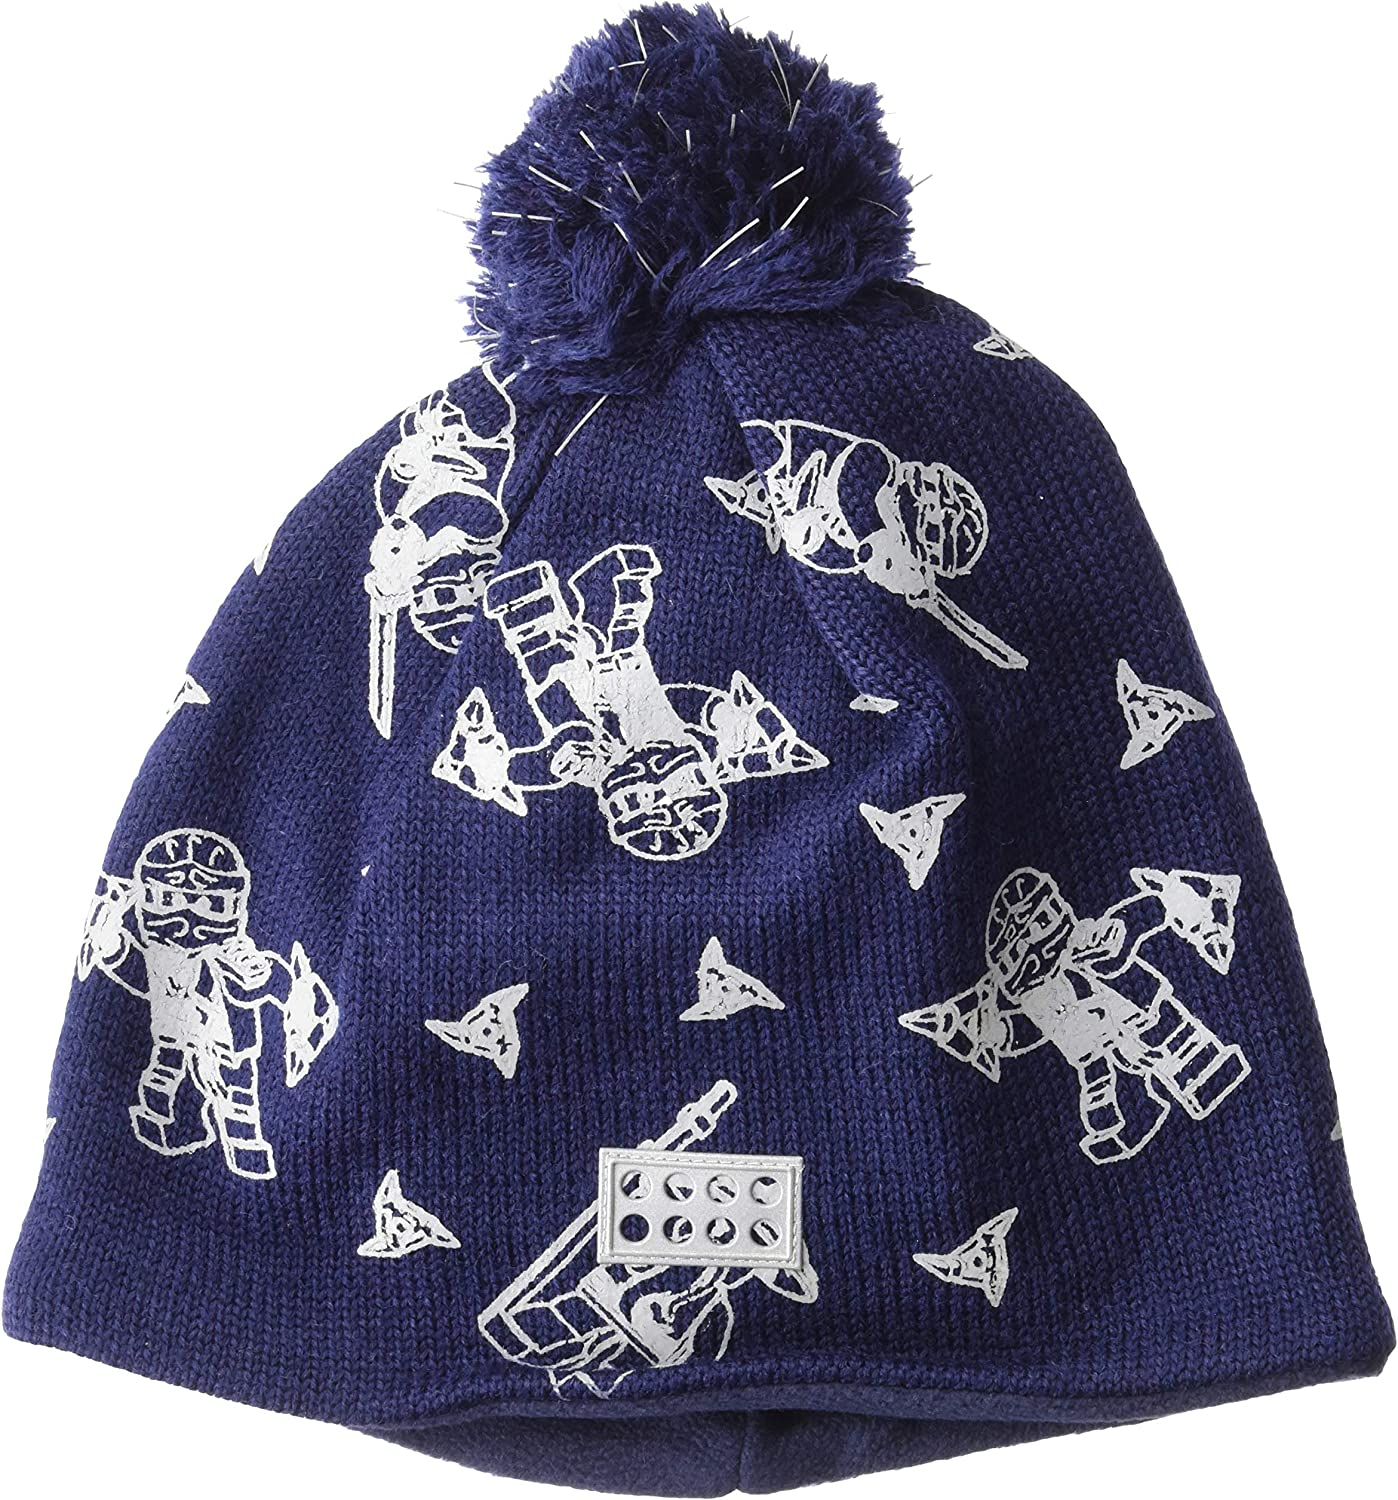 LEGO Wear Boys Kid's Fleece-Lined Wool Knit Printed Hat with Reflective Pom Pom & Detail: Clothing